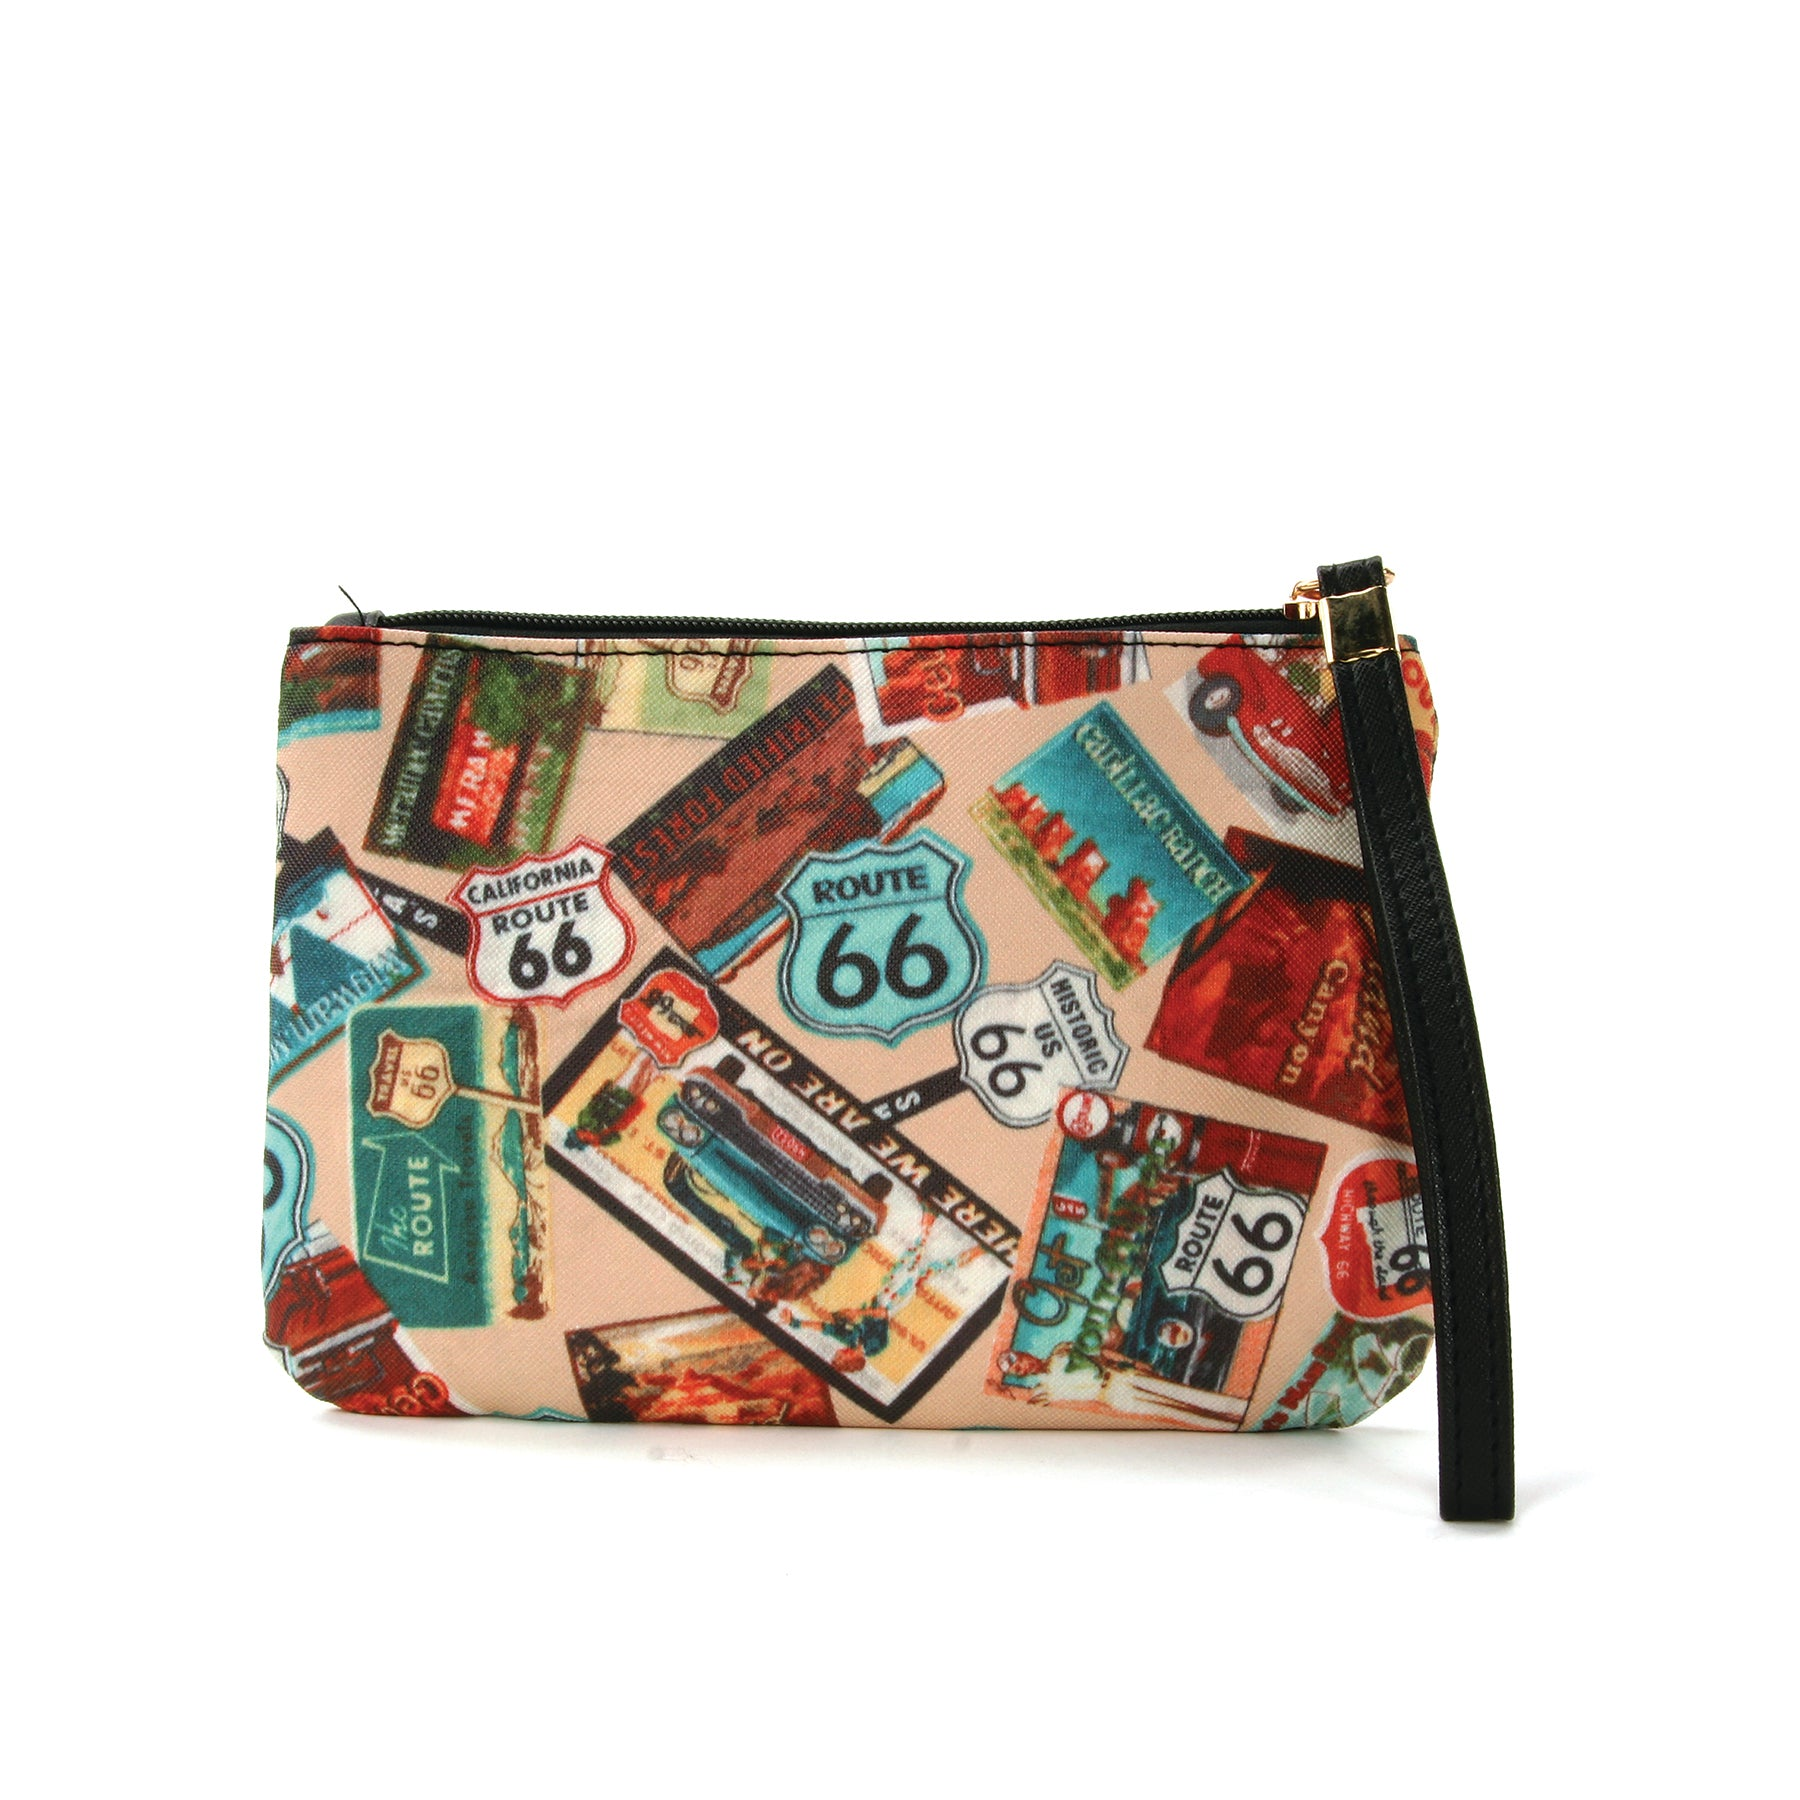 Route 66 Wristlet in Vinyl Material, beige color, front view